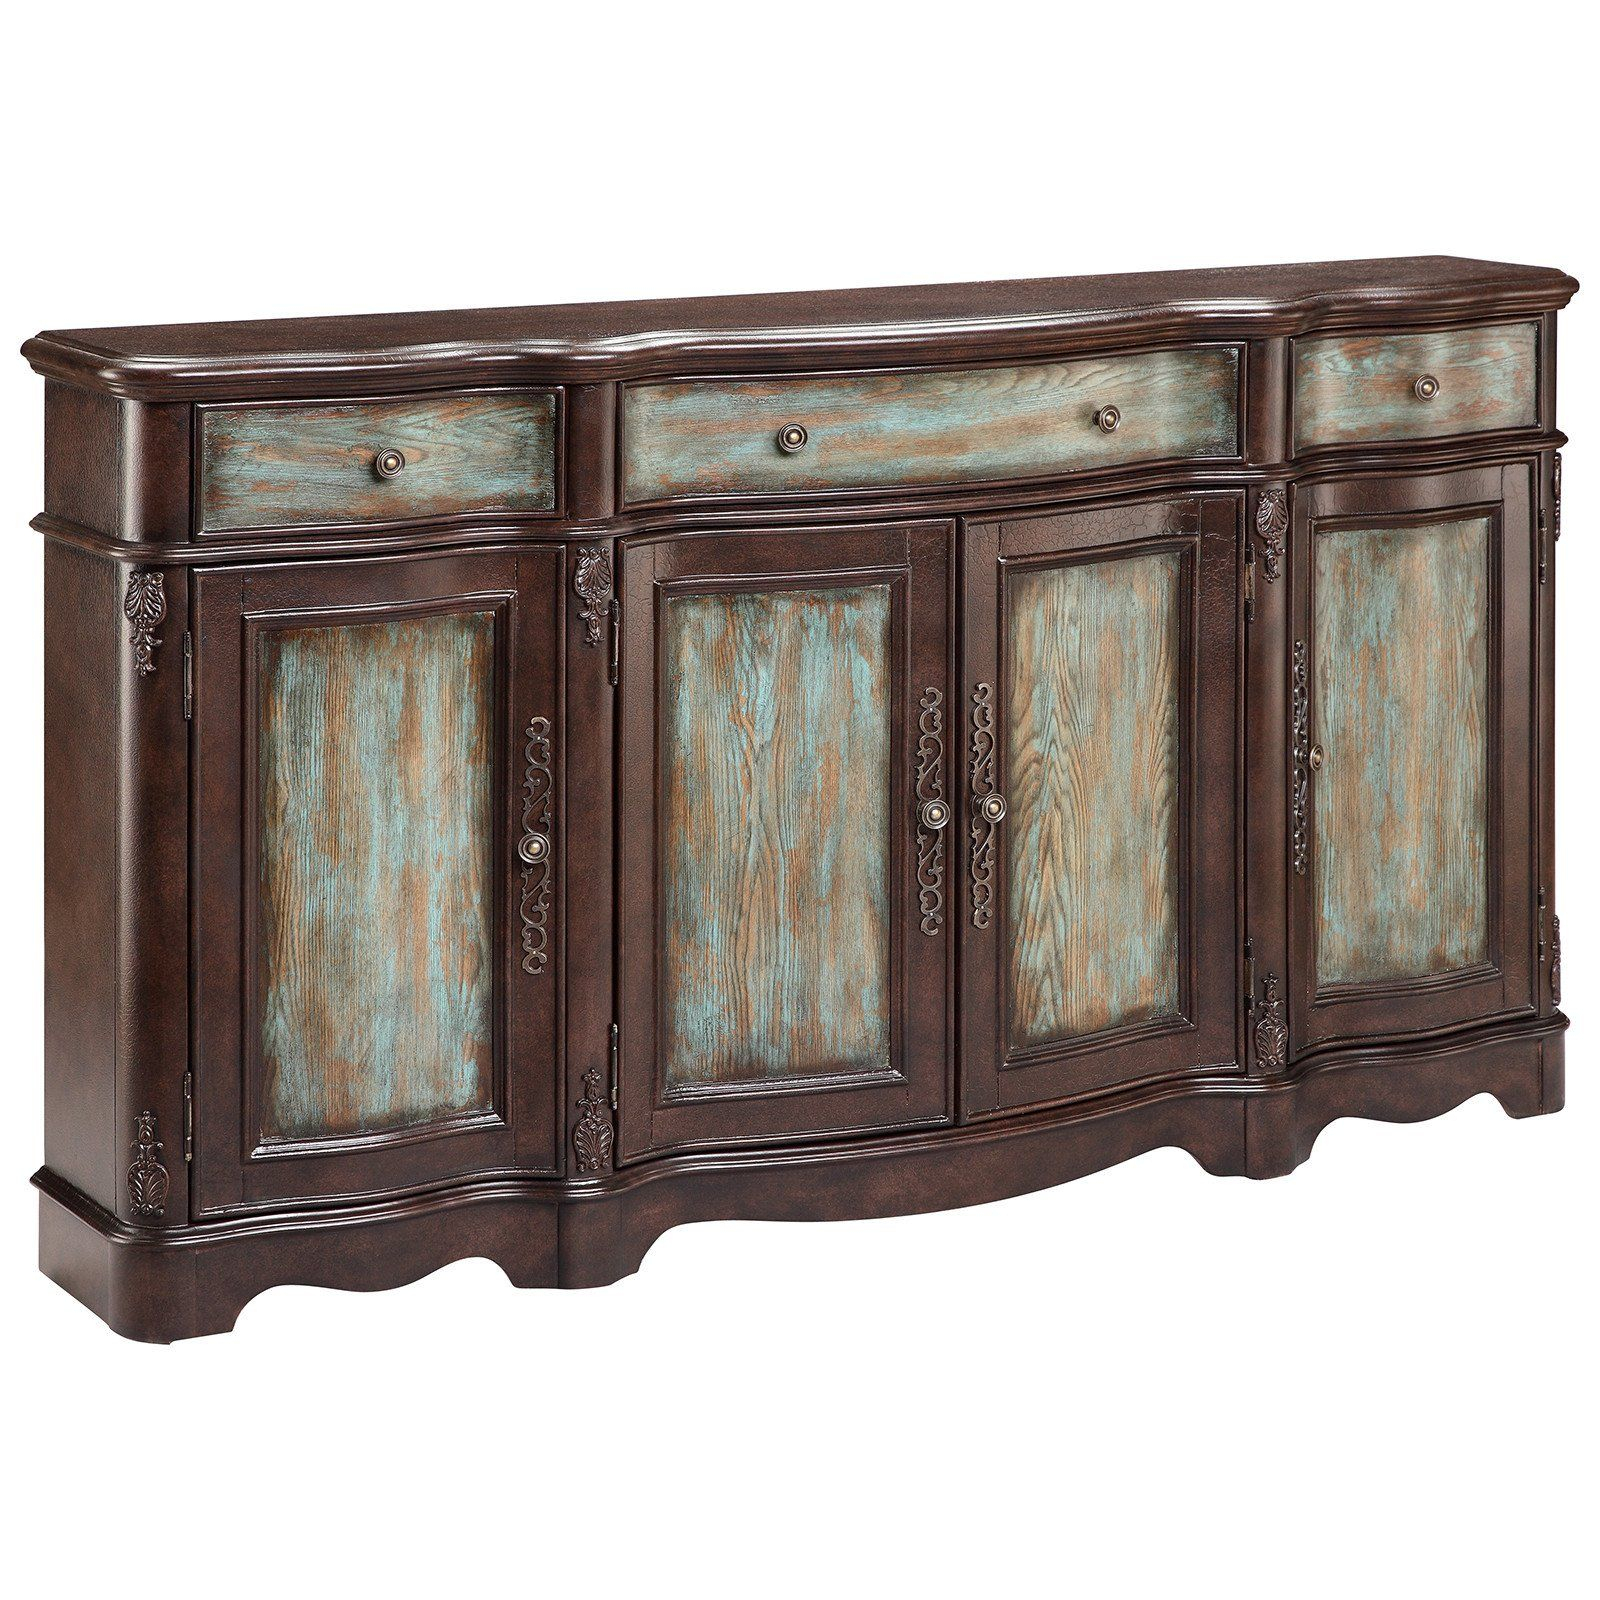 Lyle 4 Door Sideboard In Brown And Blue | Credenzas, Chests Intended For Most Recently Released Hewlett Sideboards (#15 of 20)